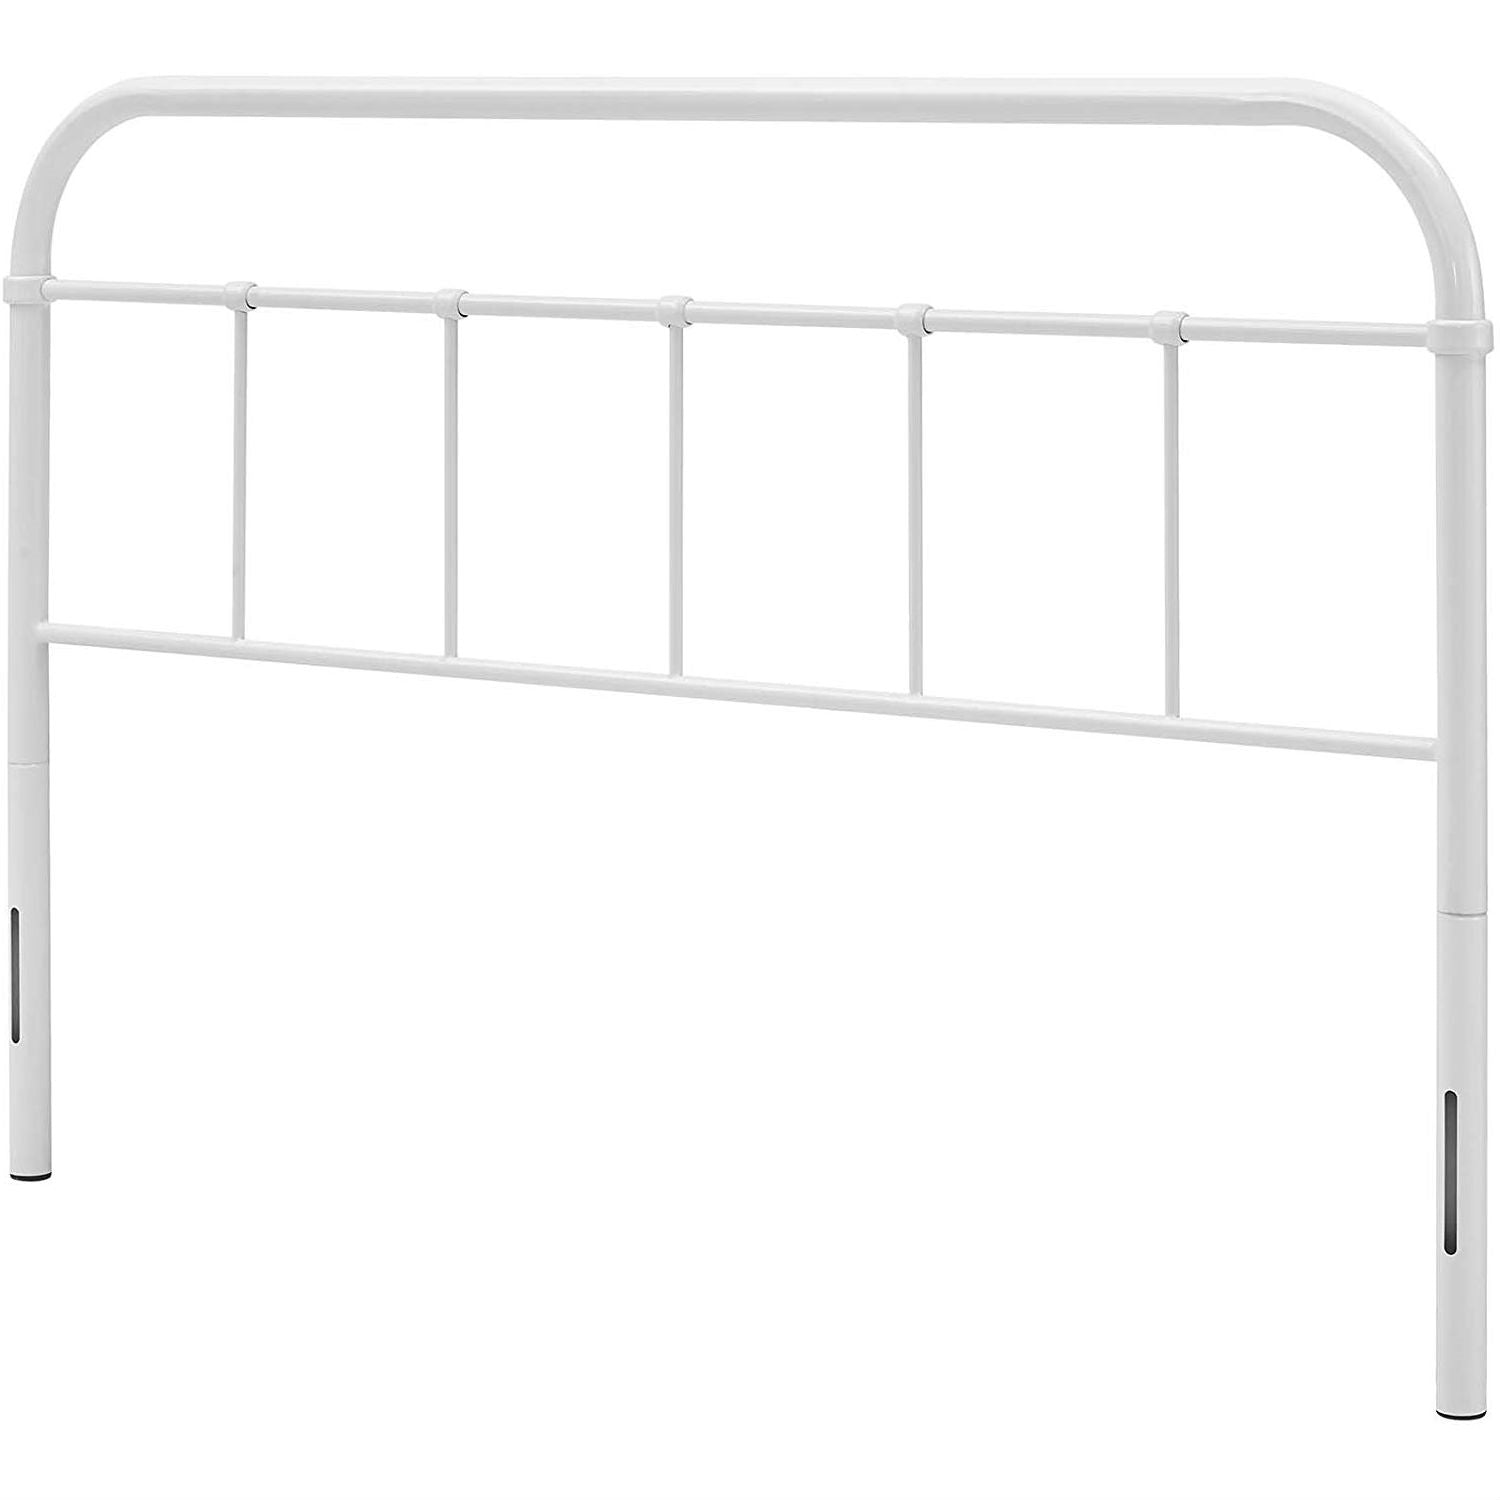 King size Vintage White Metal Headboard with Round Corners